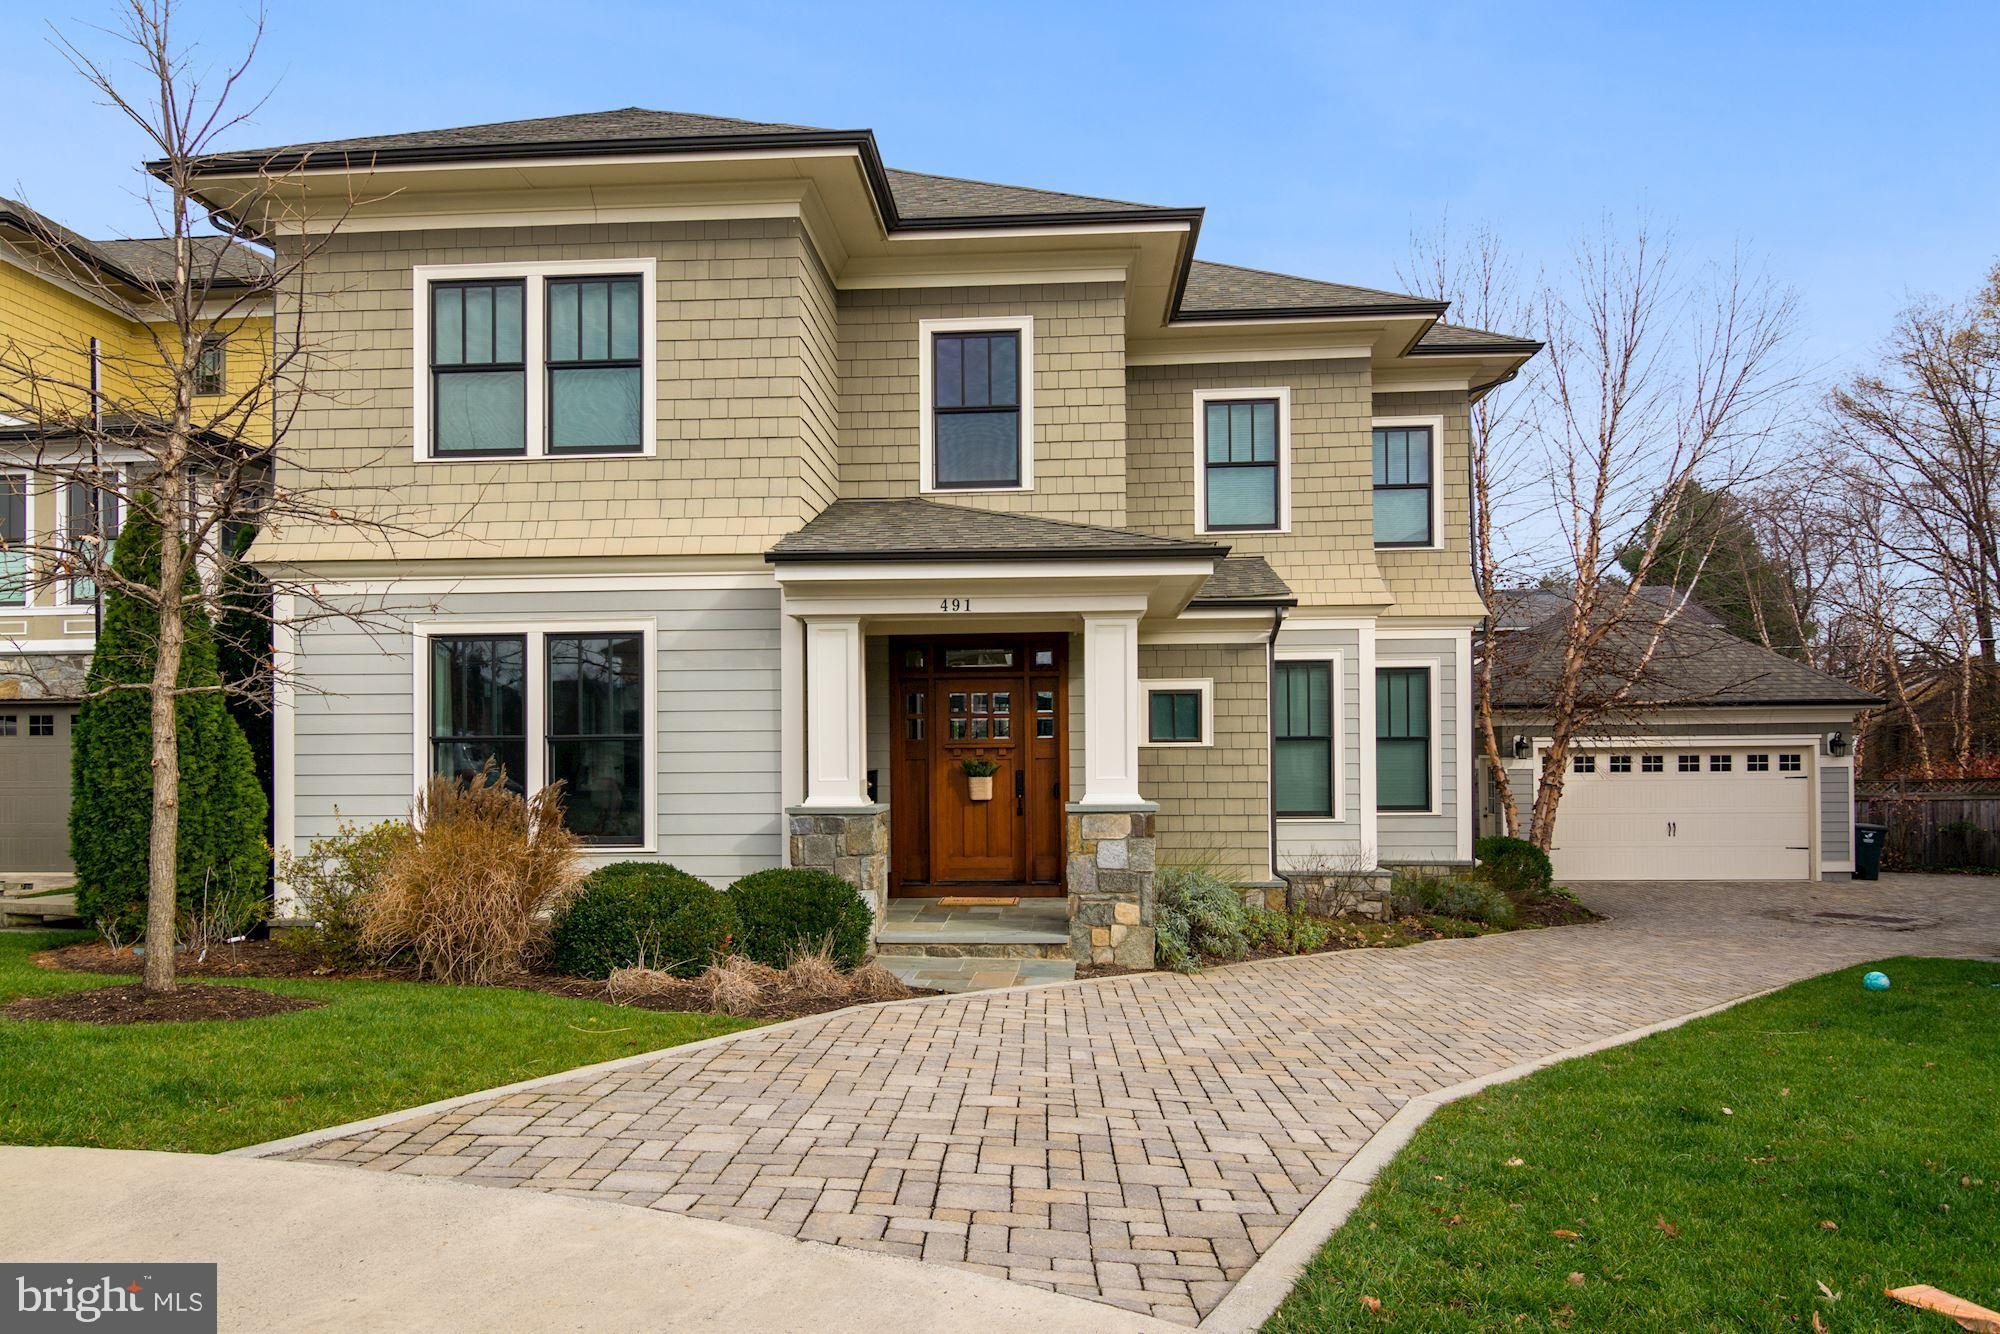 The Best of Both Worlds! Enjoy the comforts of this very spacious, high end custom home while being